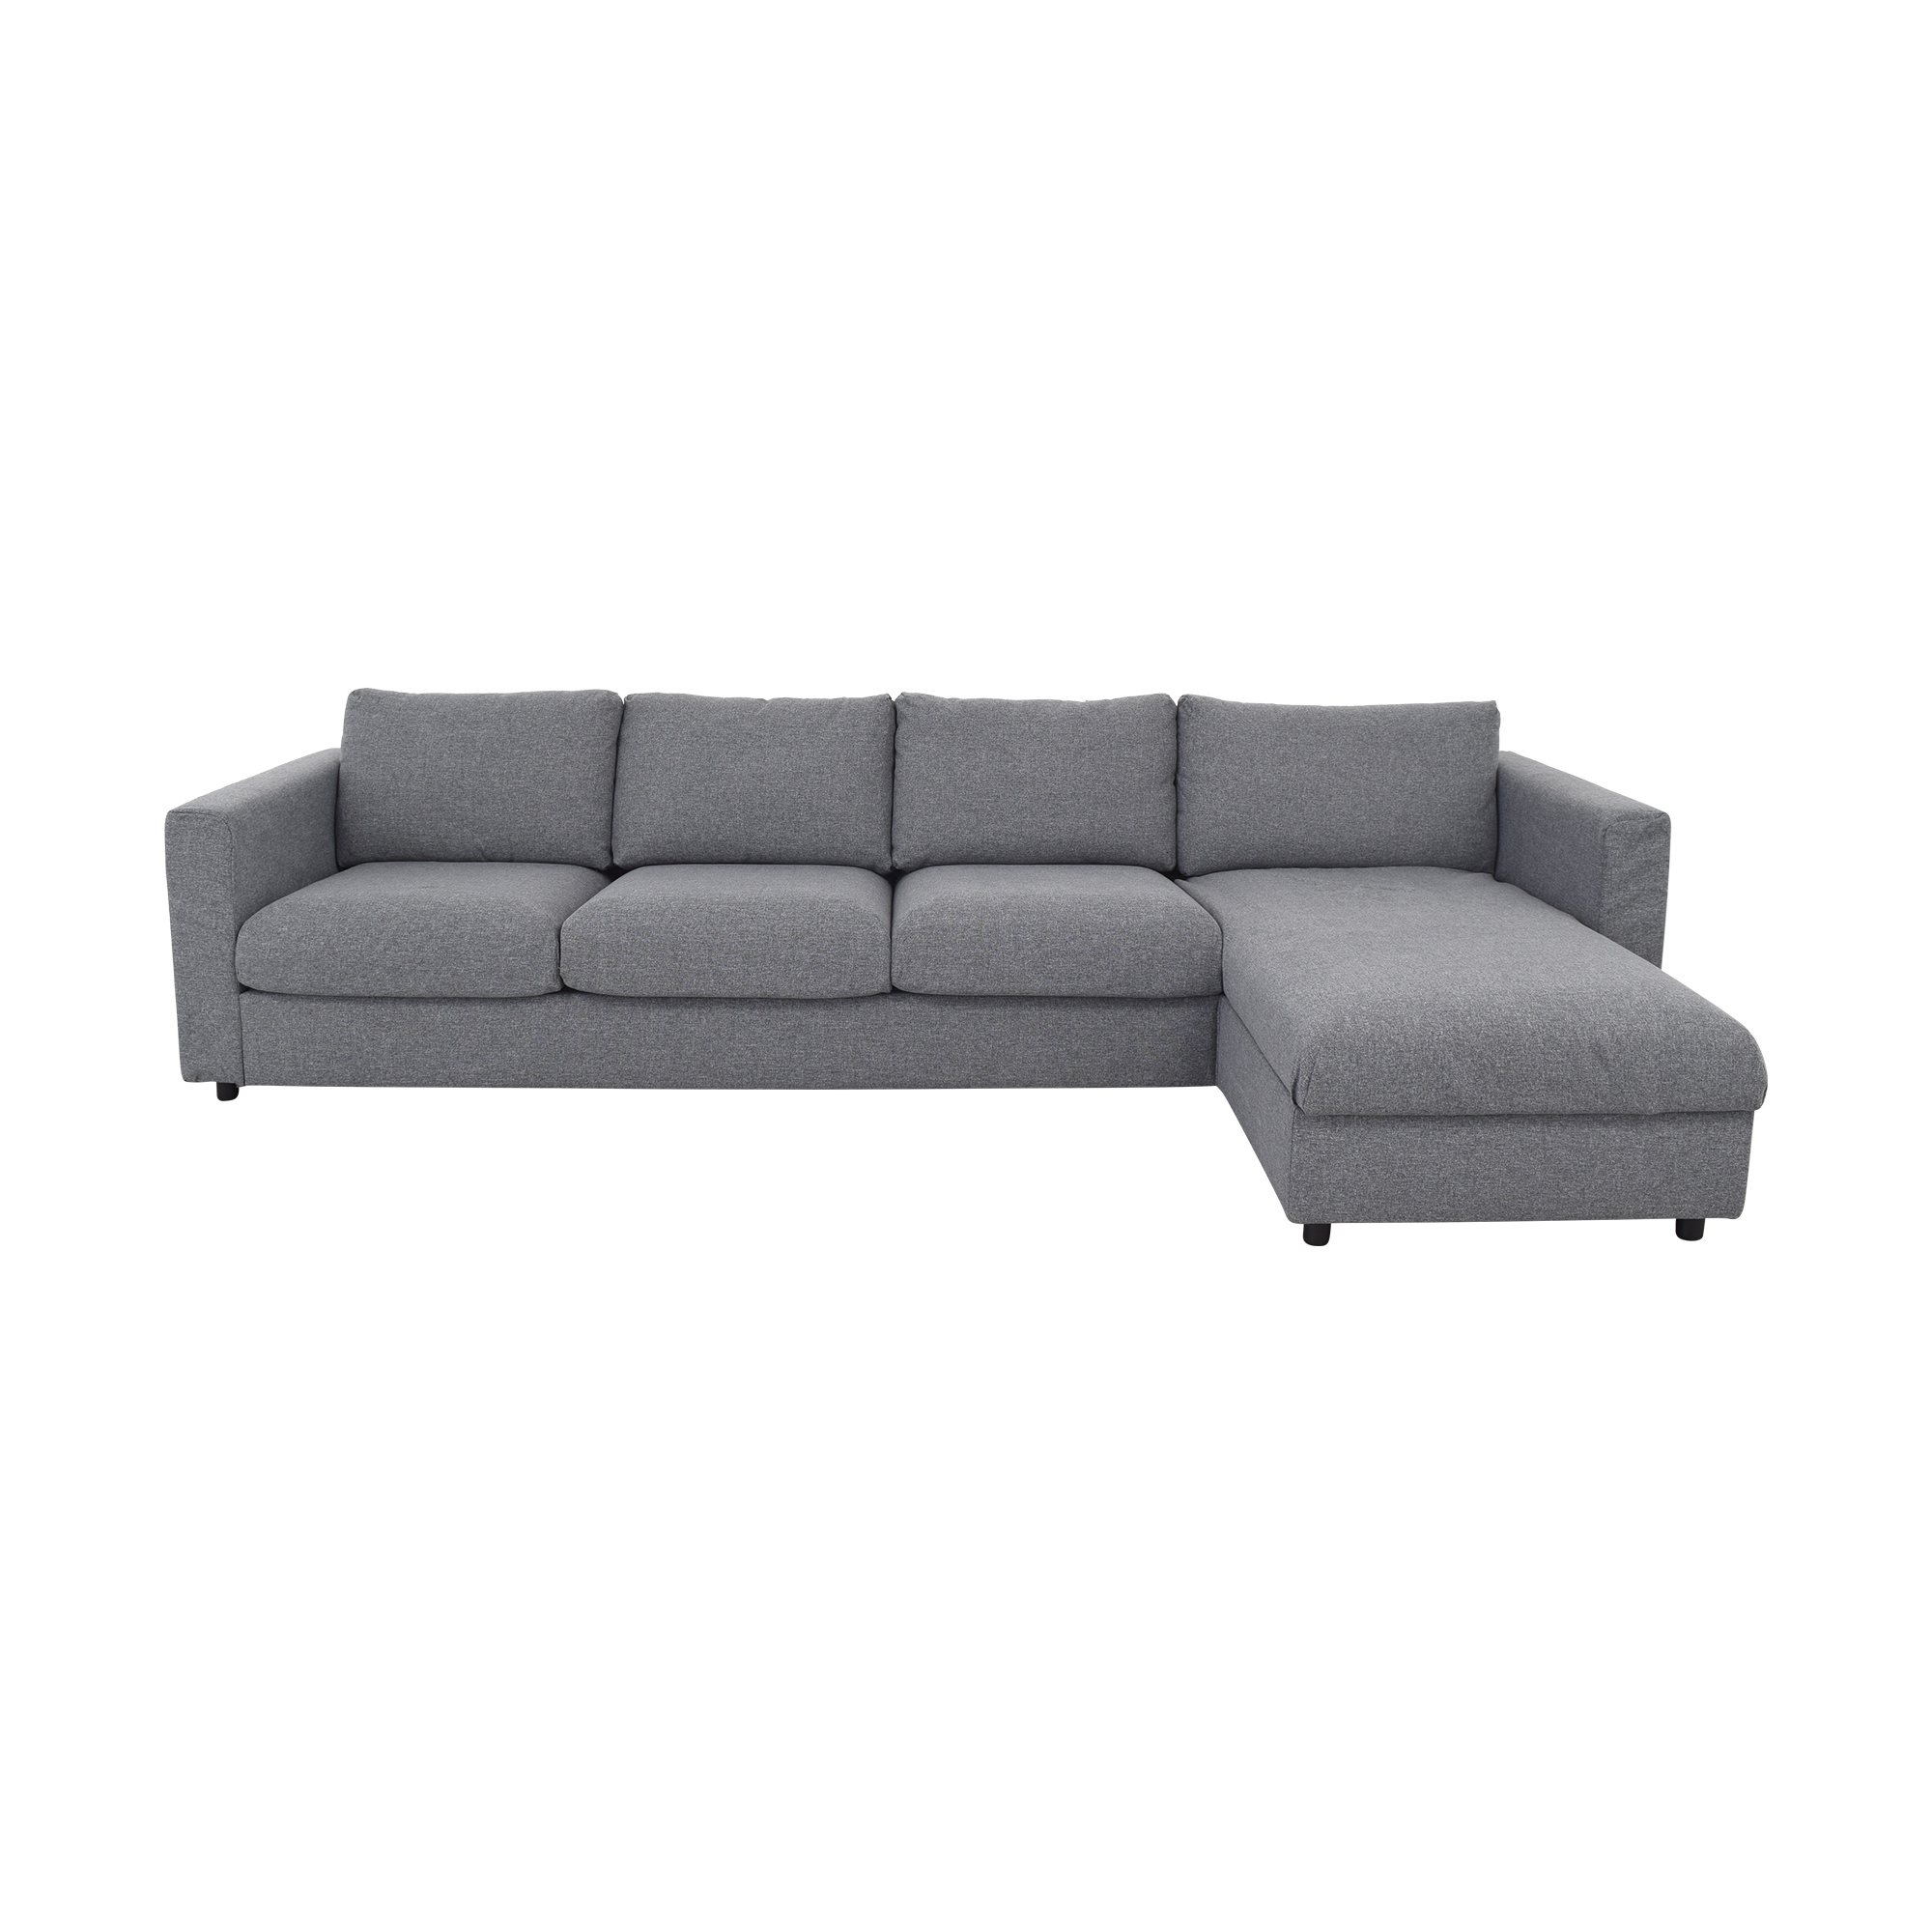 IKEA IKEA Vimle Sectional Sofa dimensions